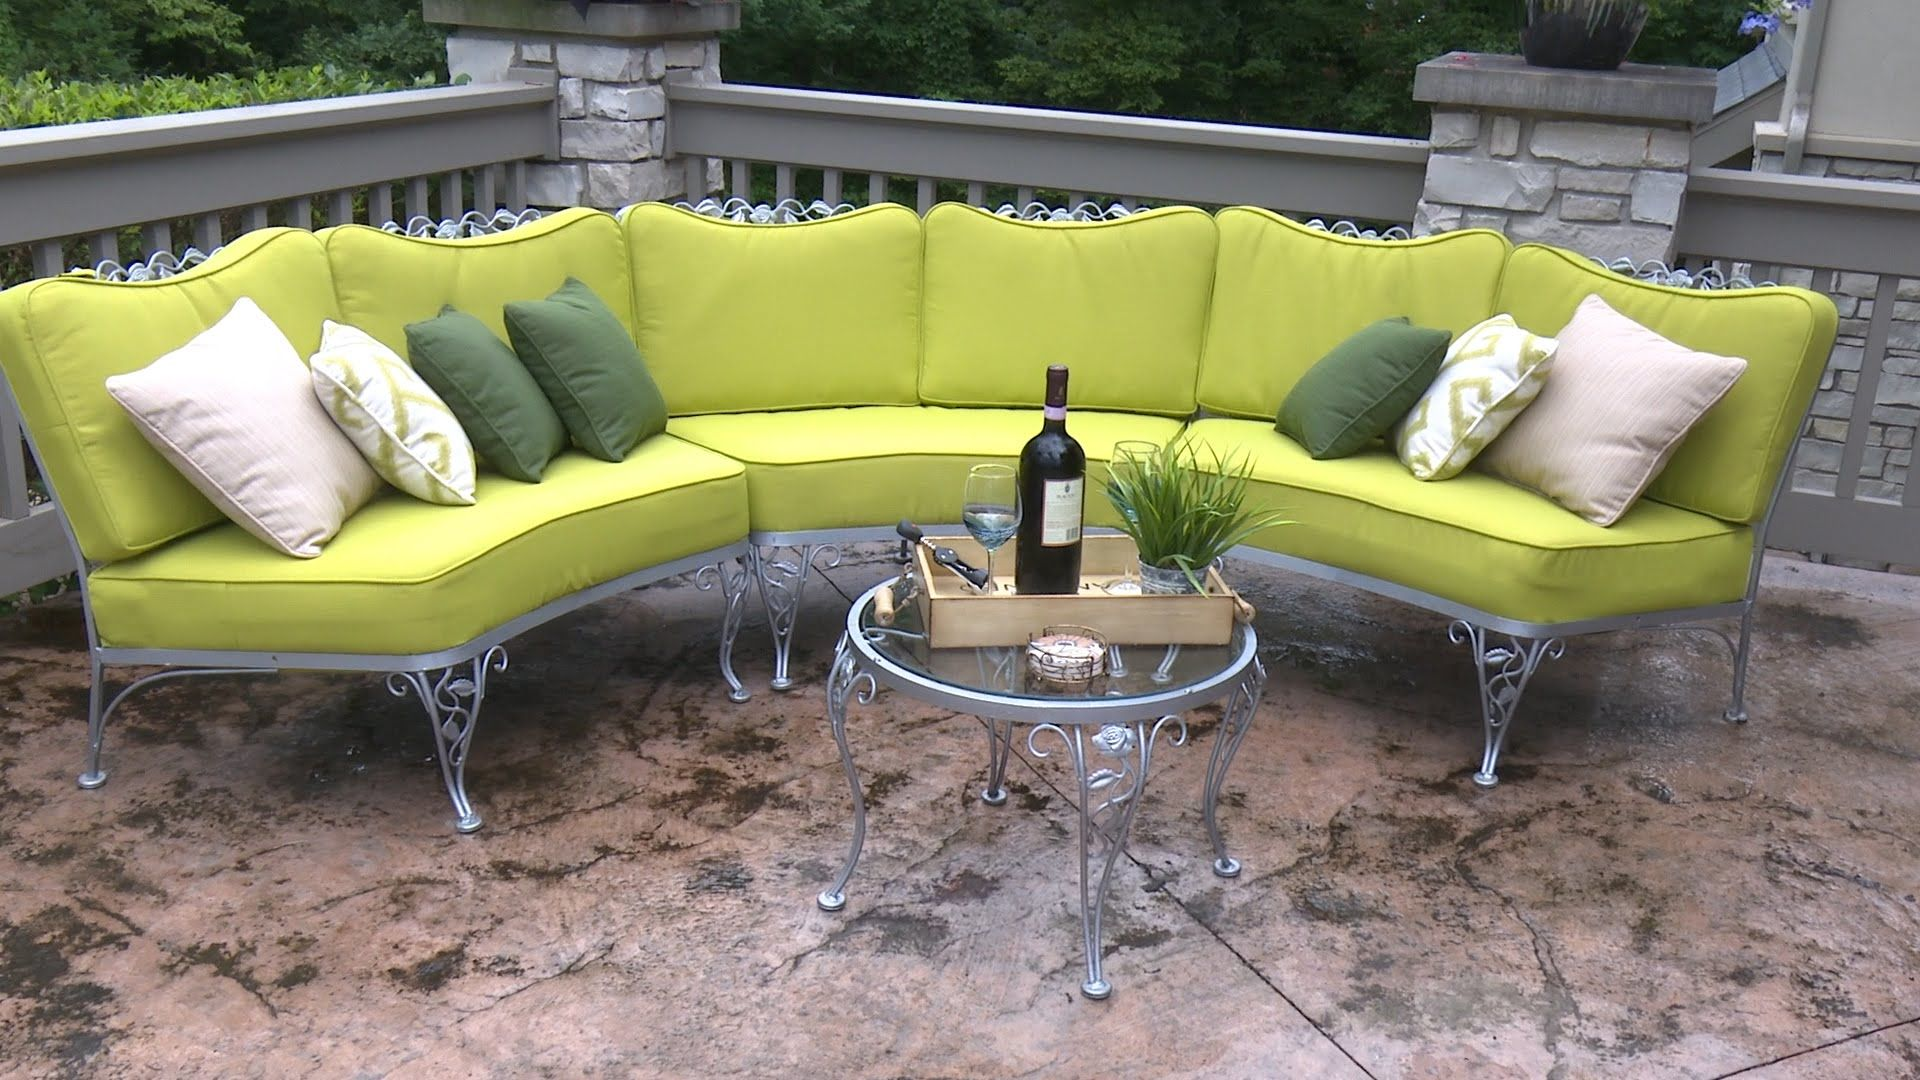 How To Make Cushions For A Curved Patio Set Upholstery Pinterest